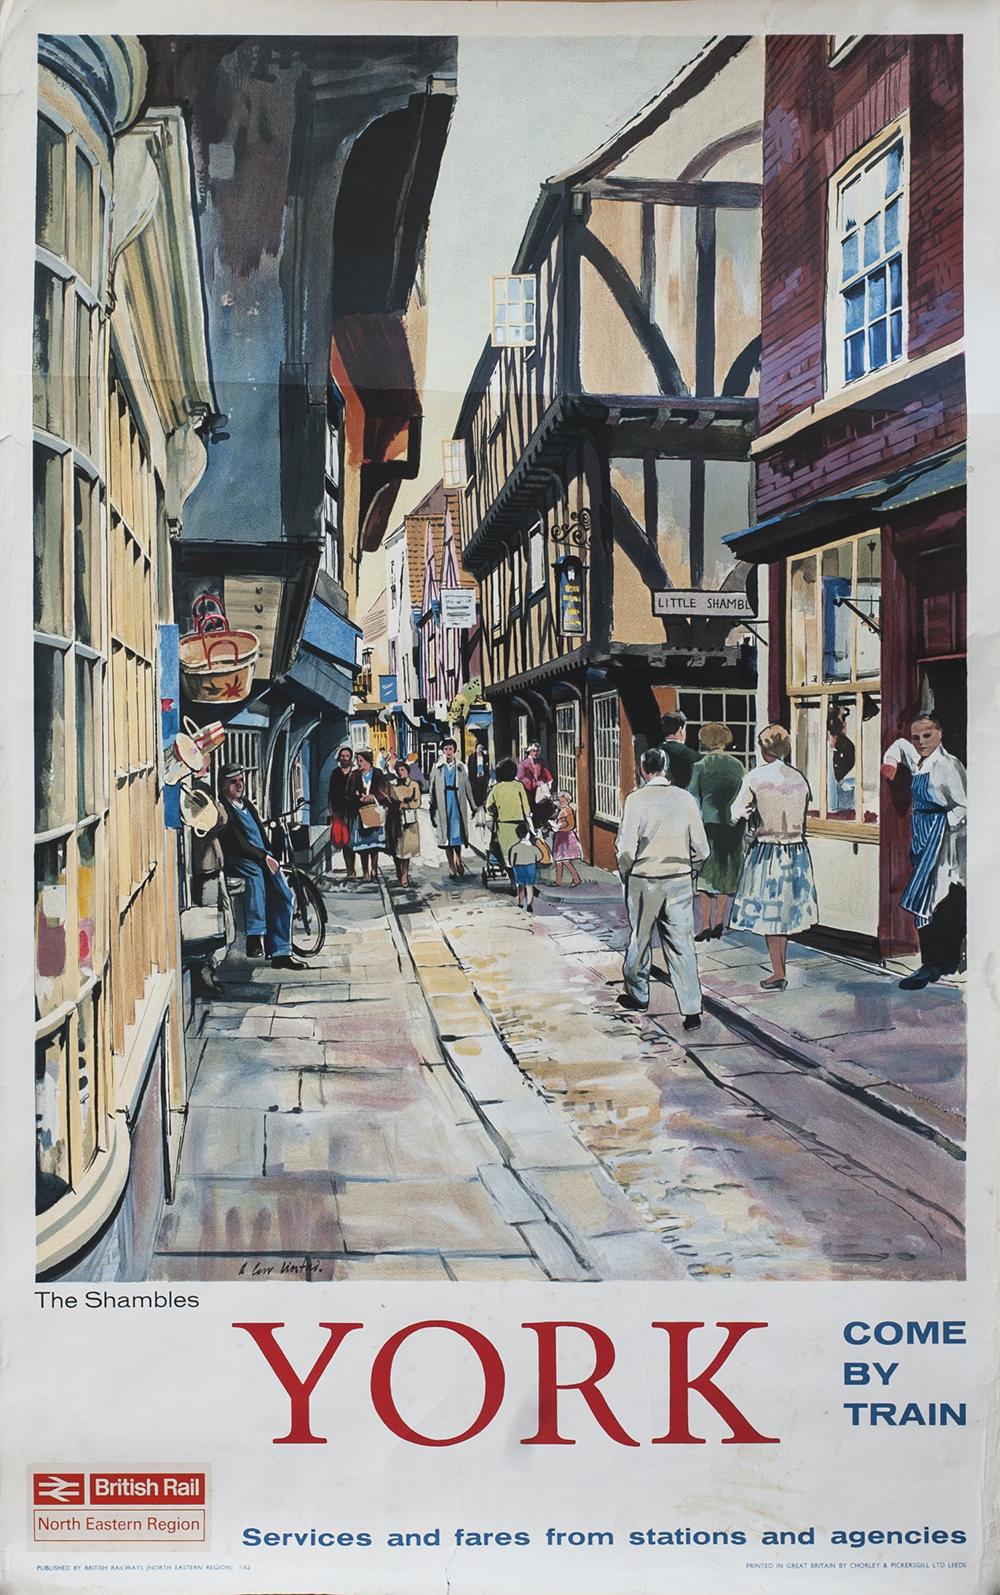 Lot 489 - Poster BR(NE) YORK THE SHAMBLES by A. Carr Linford 1962. Double Royal 25in x 40in. In very good